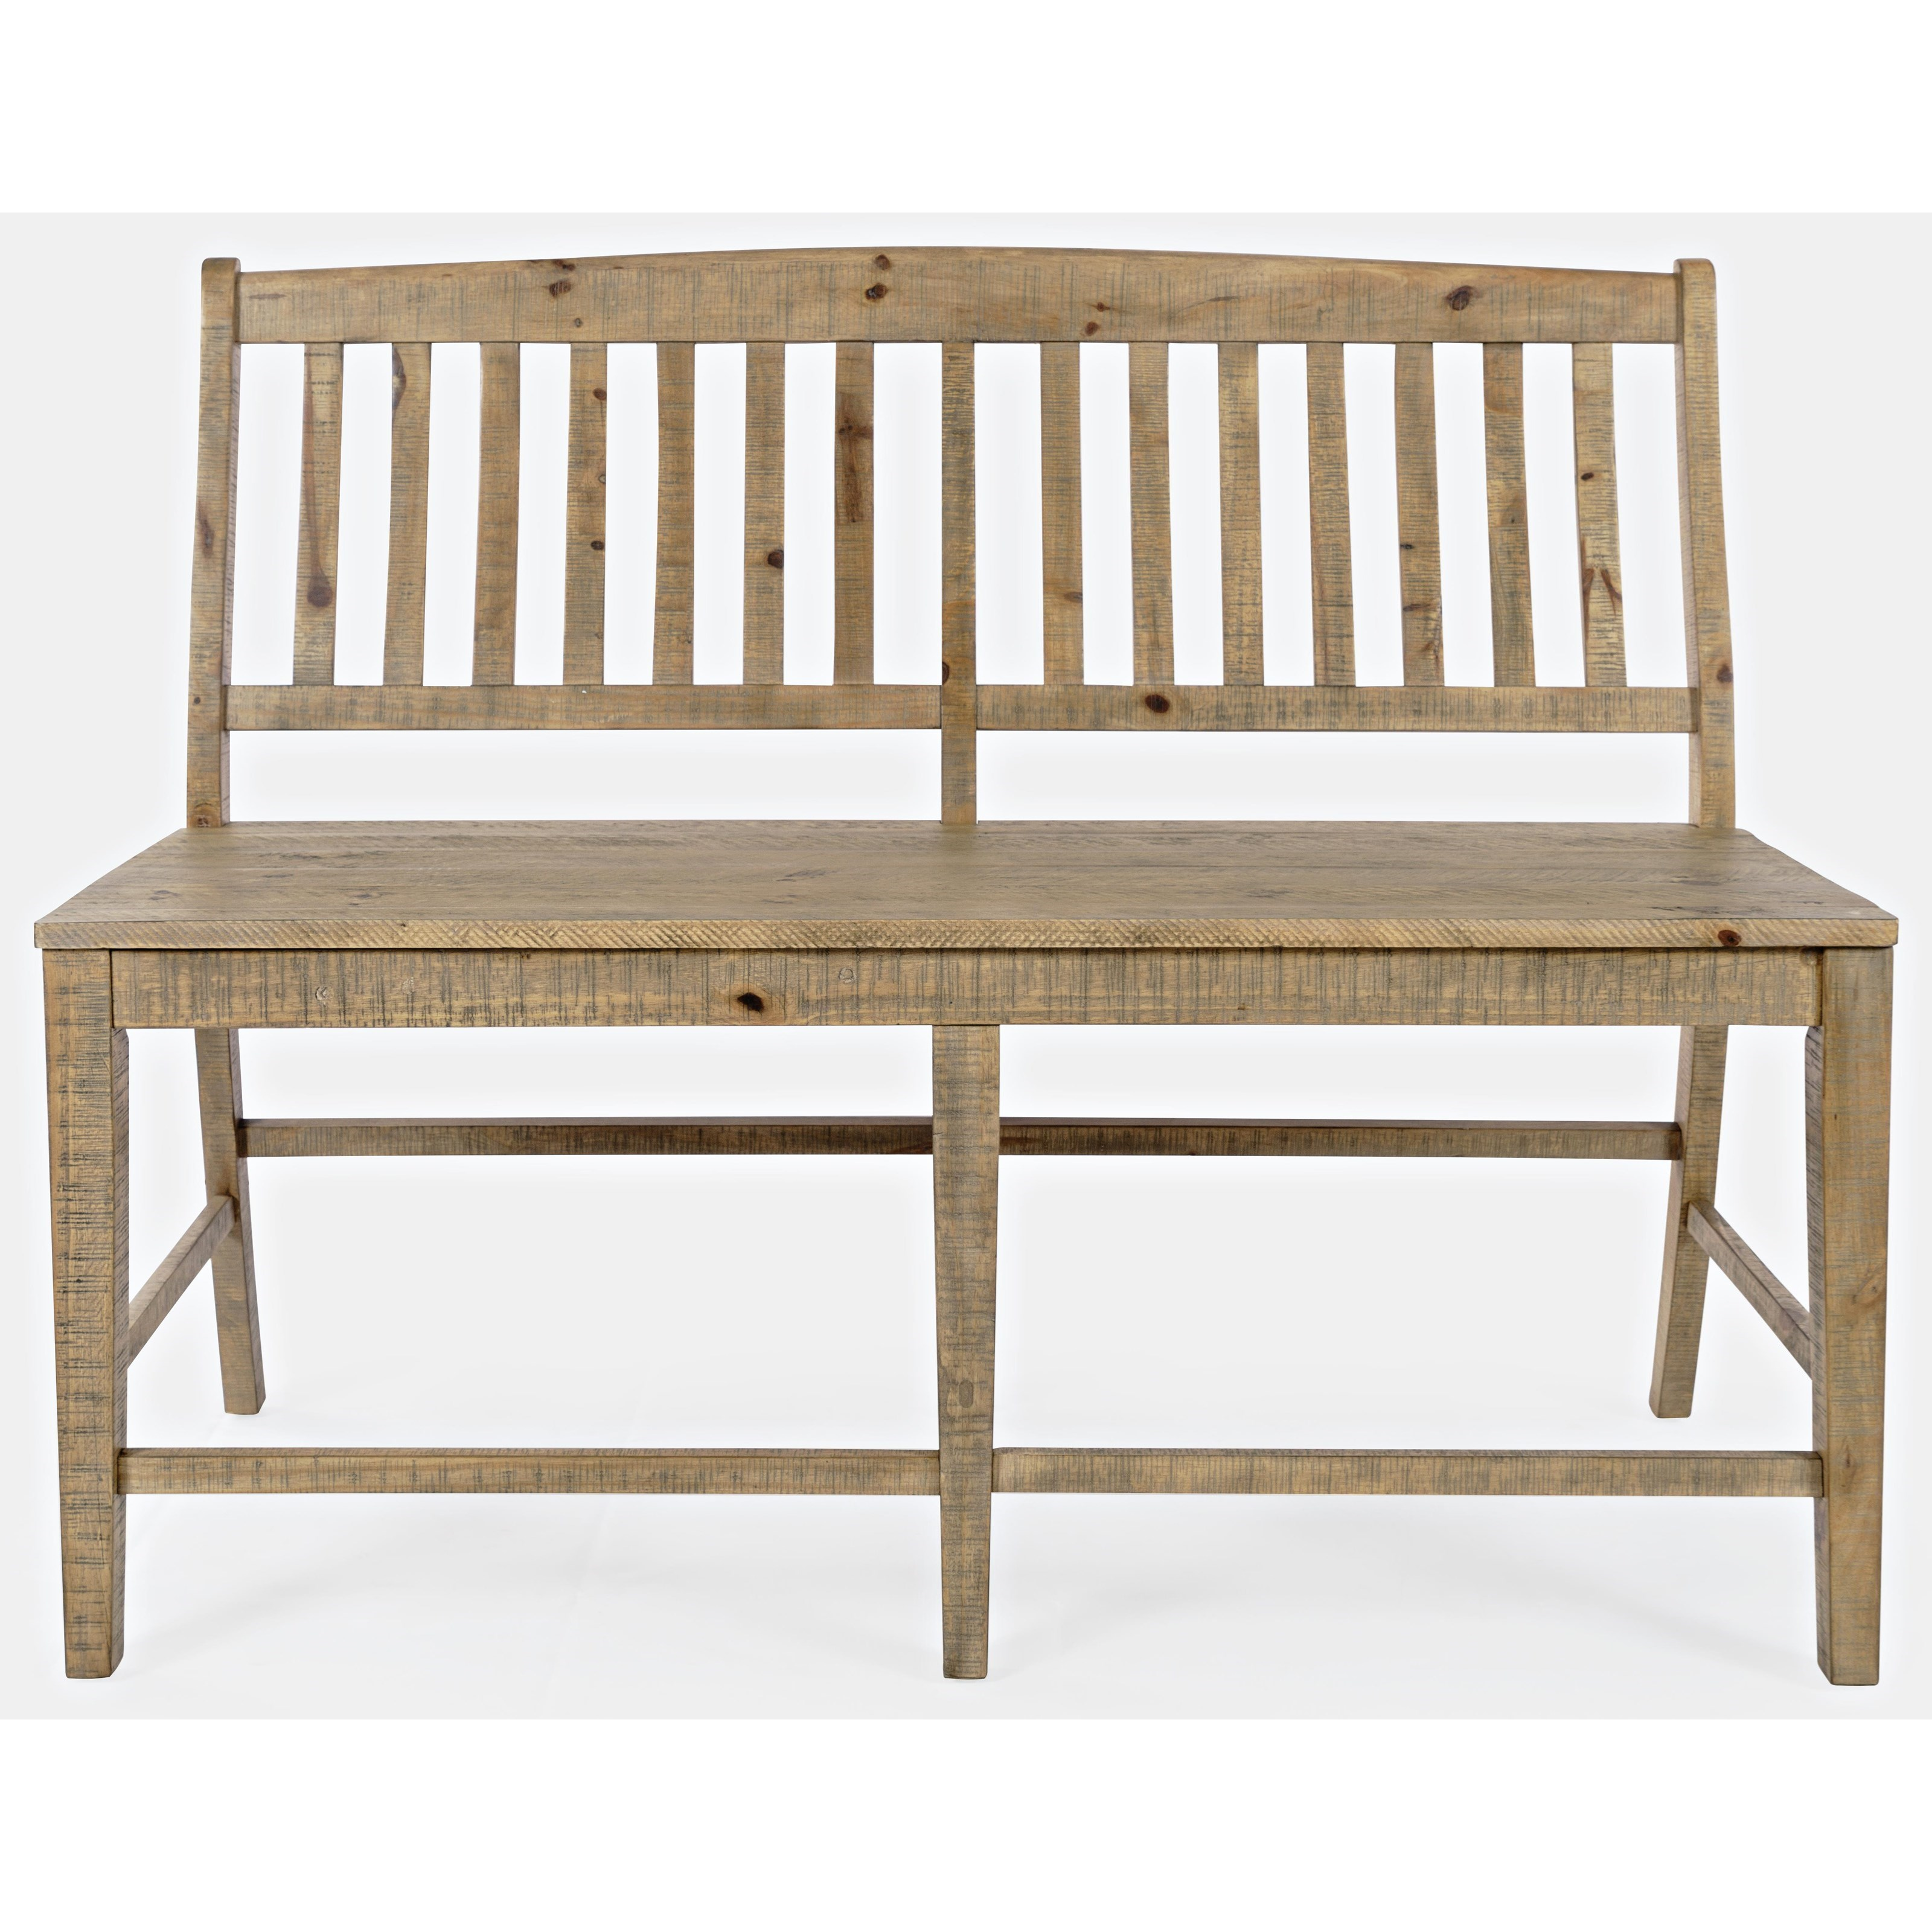 Carlyle Crossing Slatback Counter Bench by VFM Signature at Virginia Furniture Market